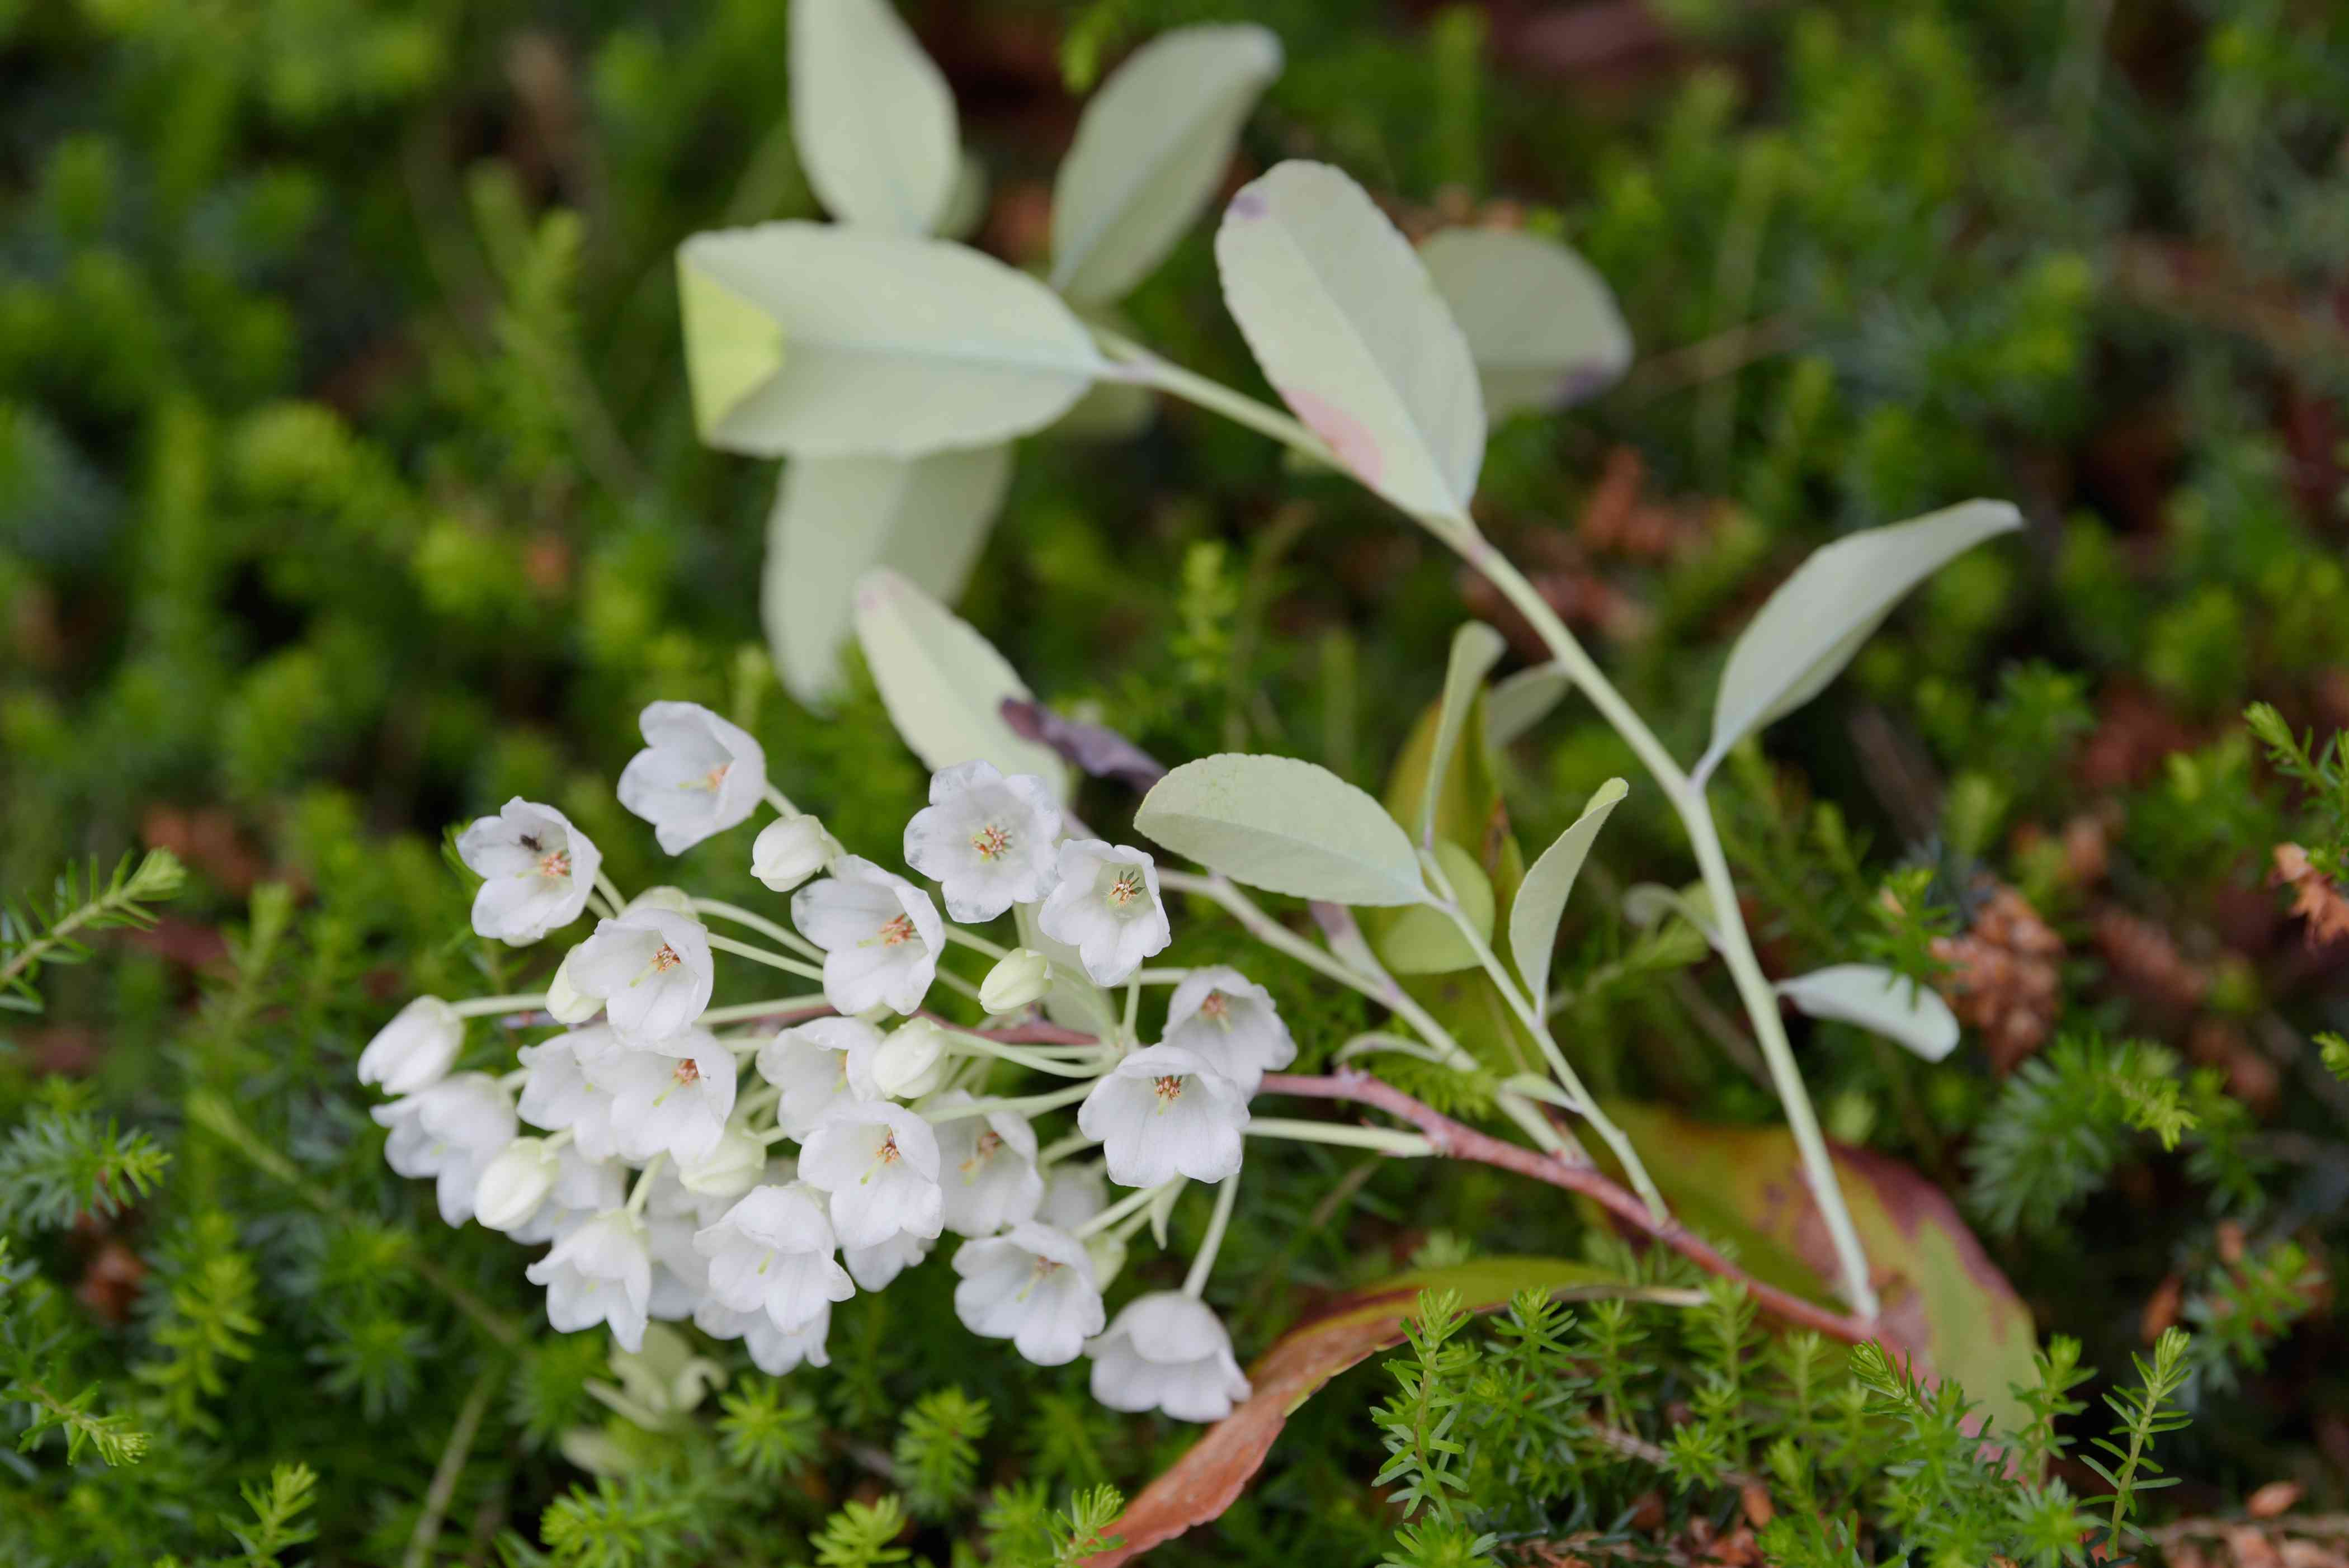 Honeycup plant with small white bell-shaped blossoms on edge of stem with gray-green leaves